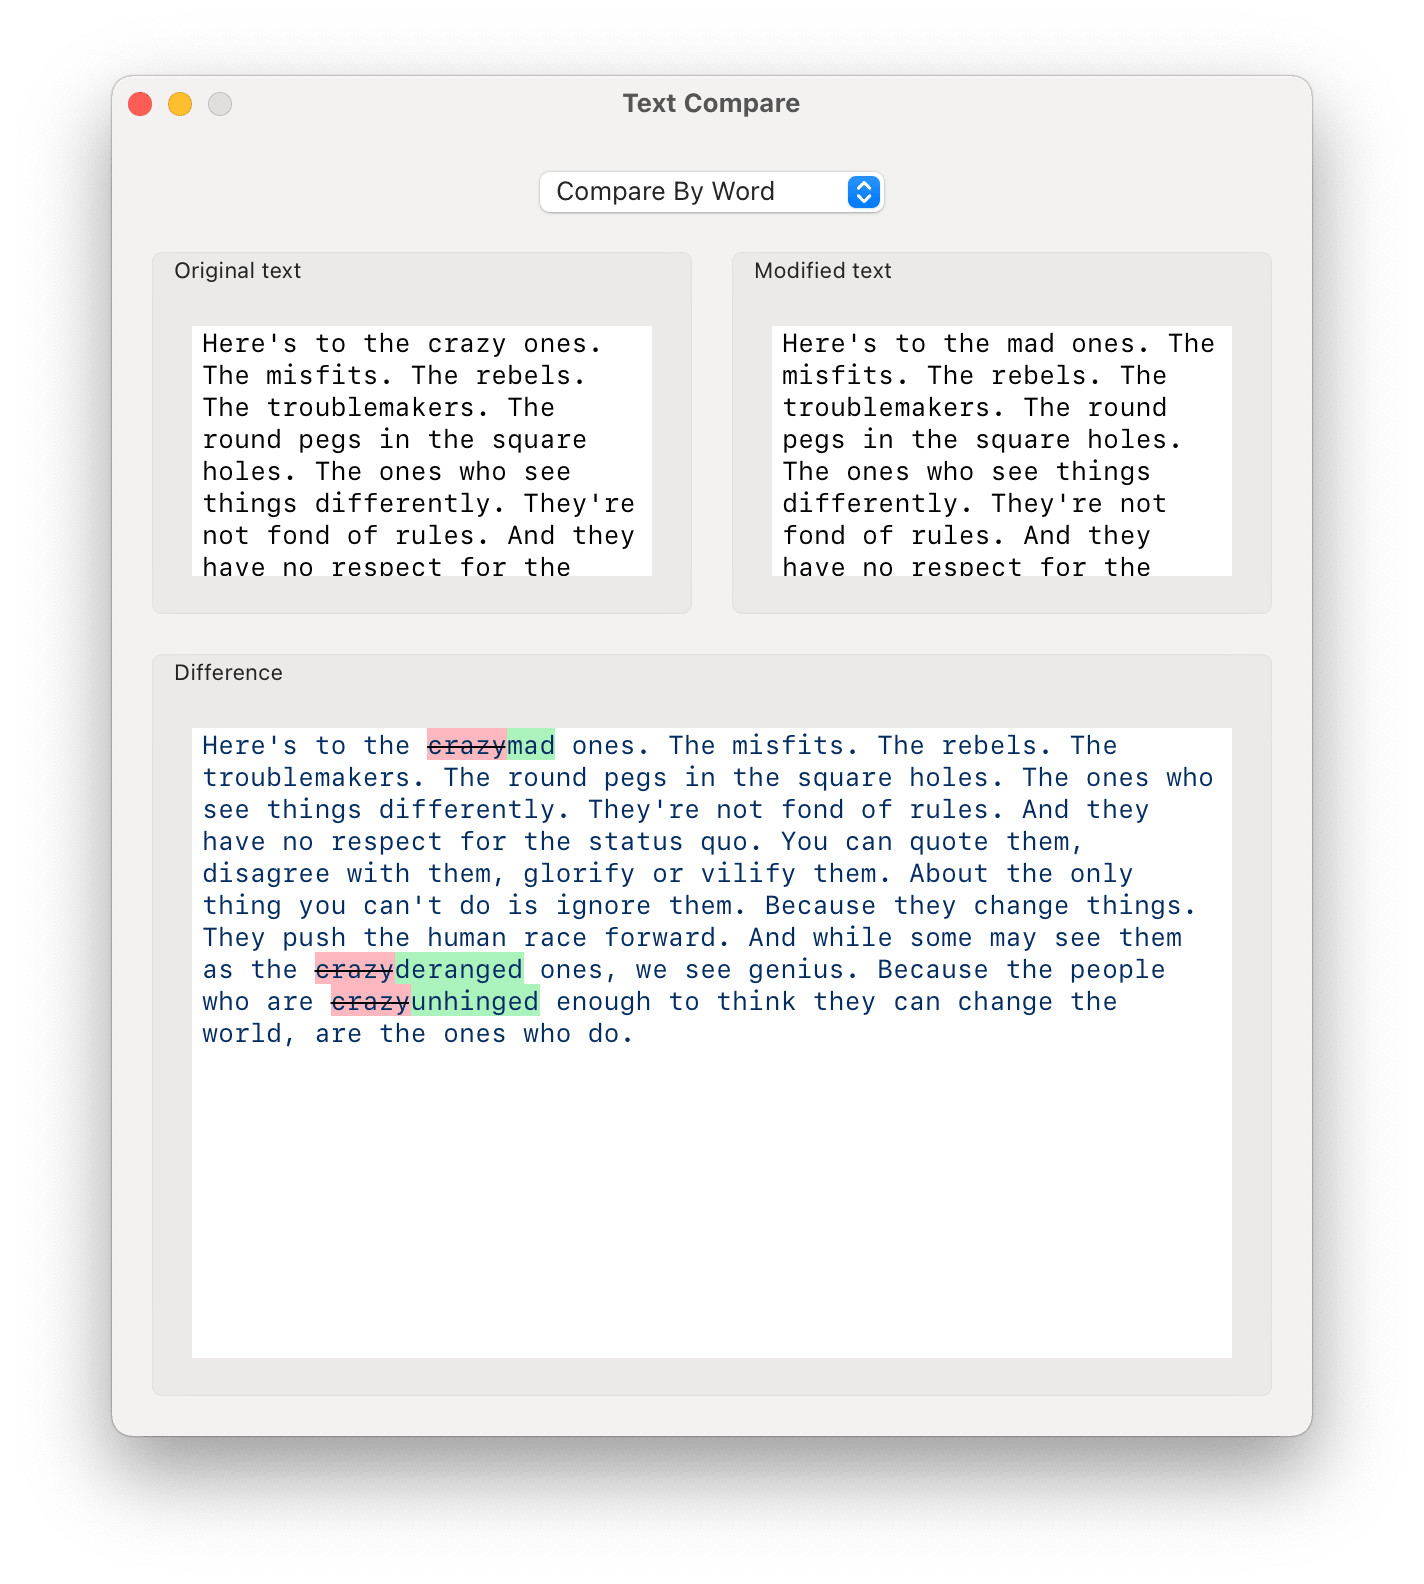 Screenshot of the Text Compare app